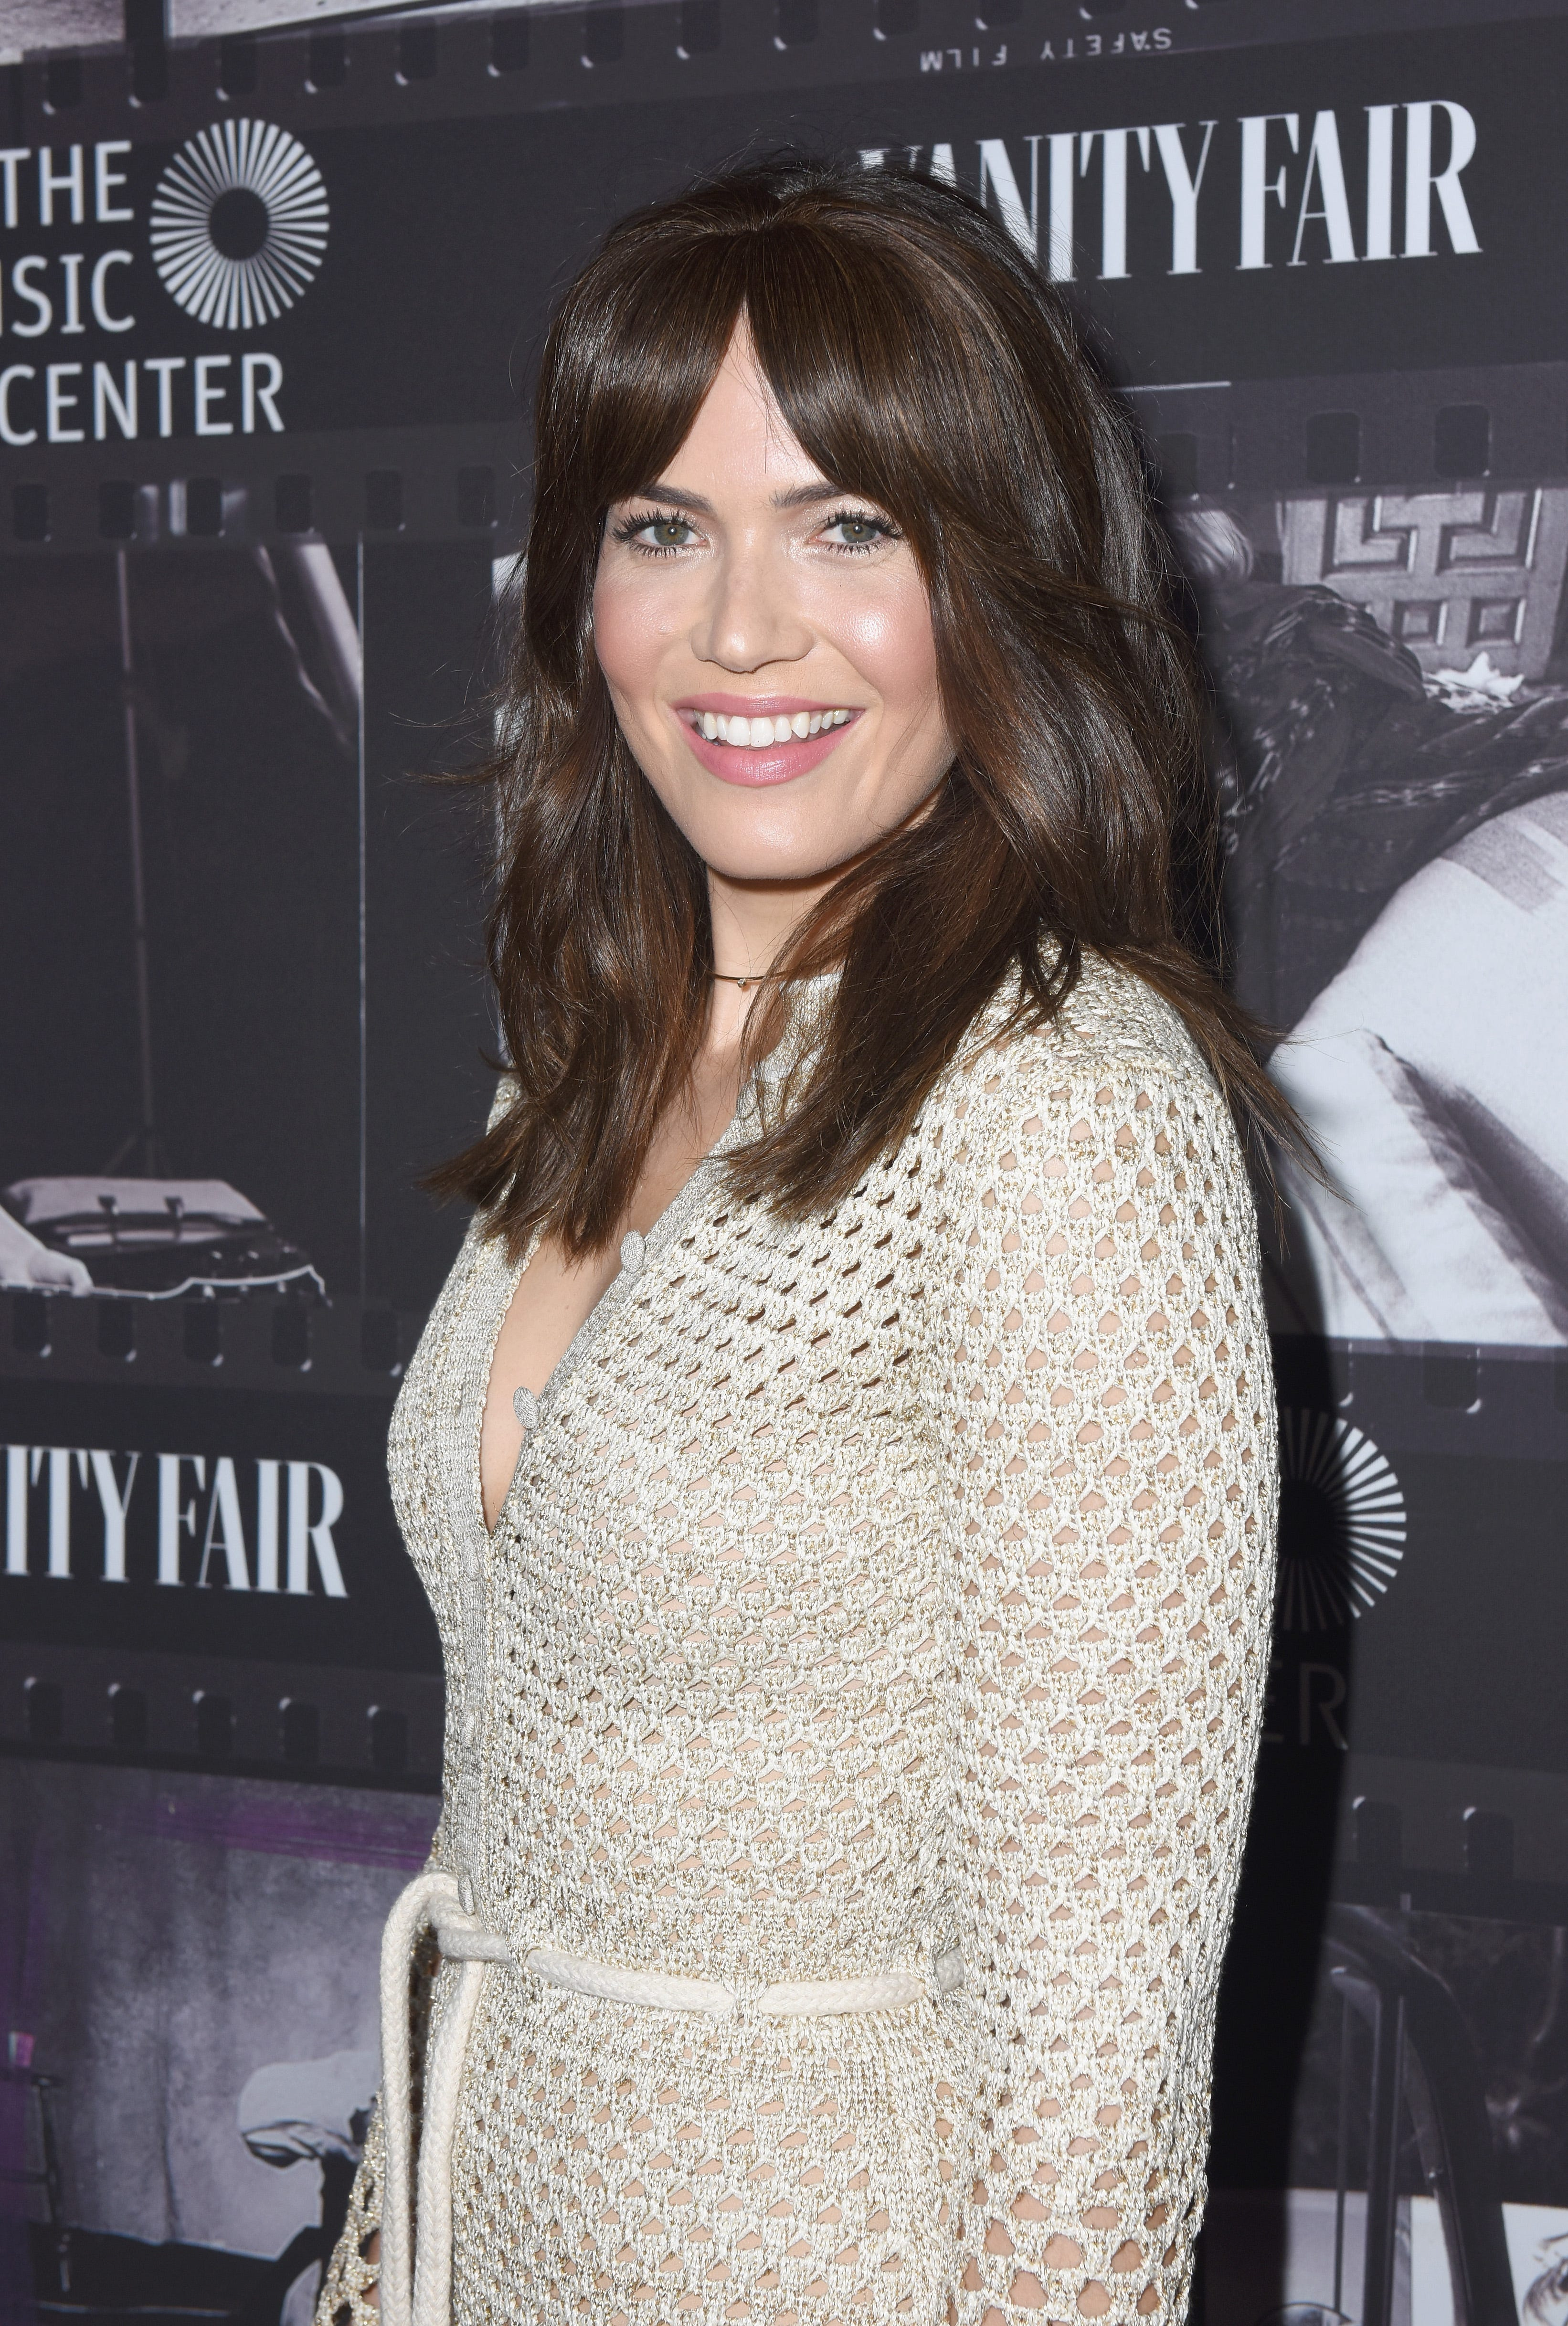 Surprise! Mandy Moore marries musician Taylor Goldsmith in secret wedding ceremony